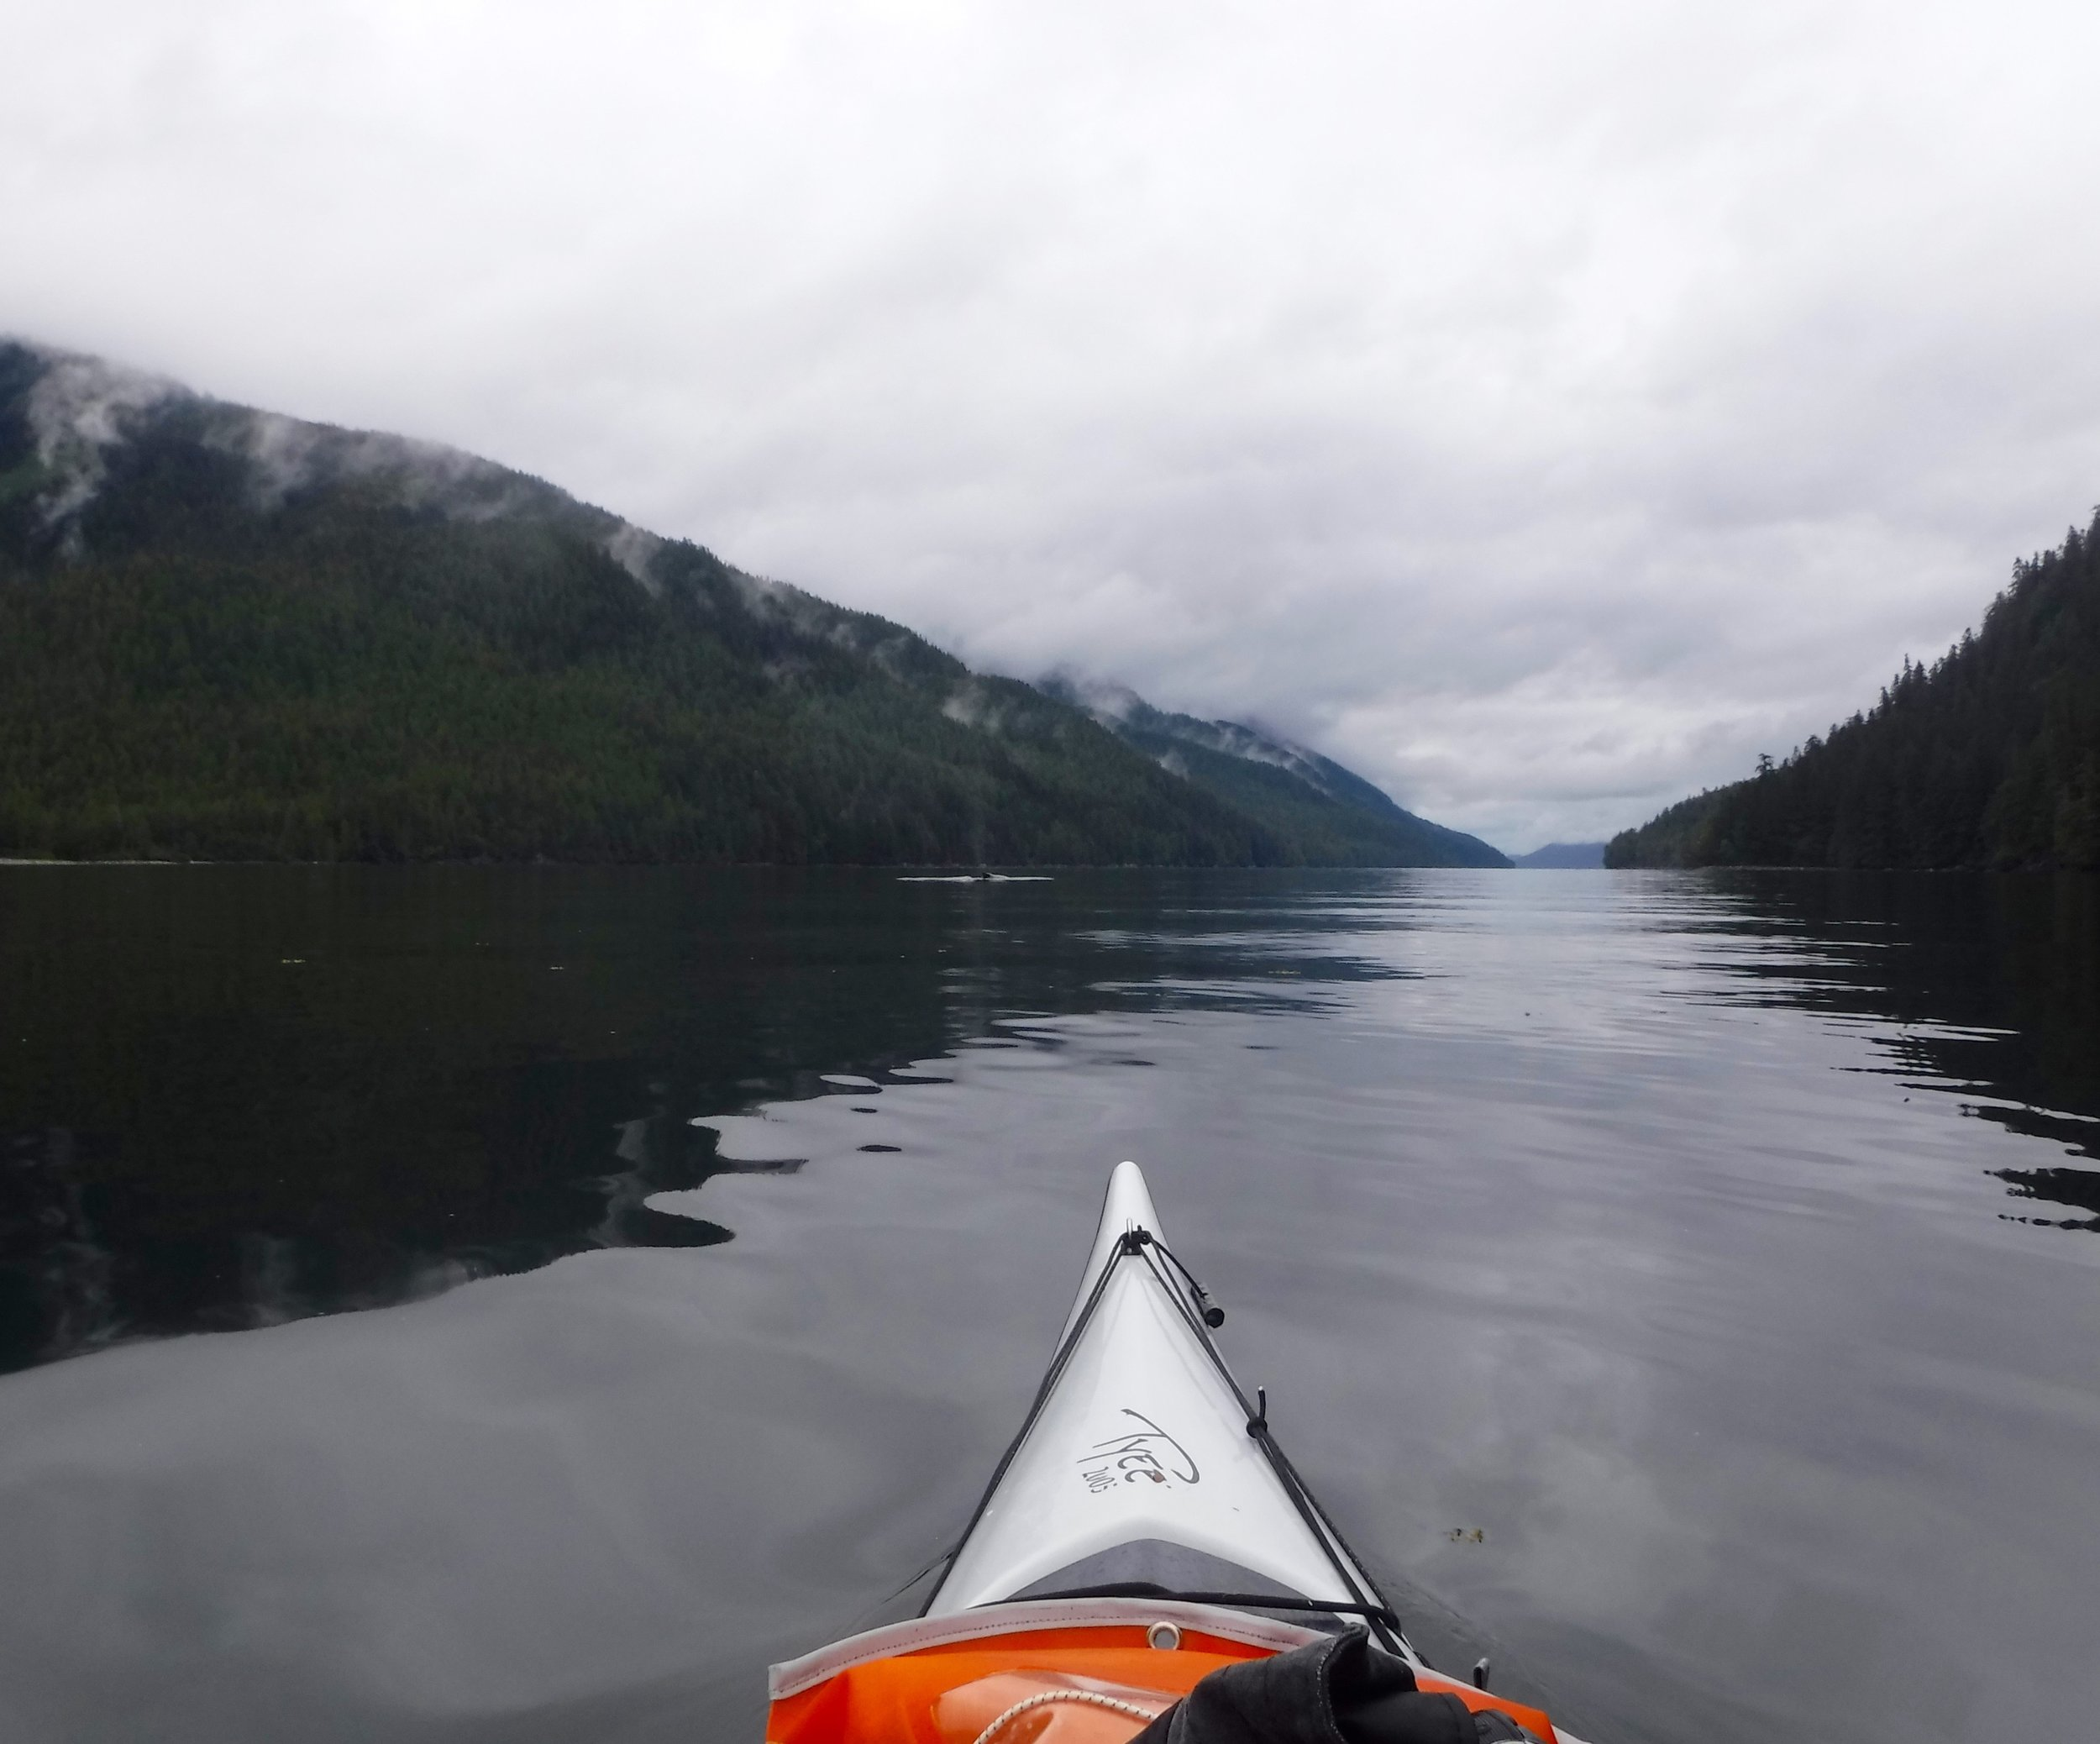 The whale is ahead of the kayak and to the left.